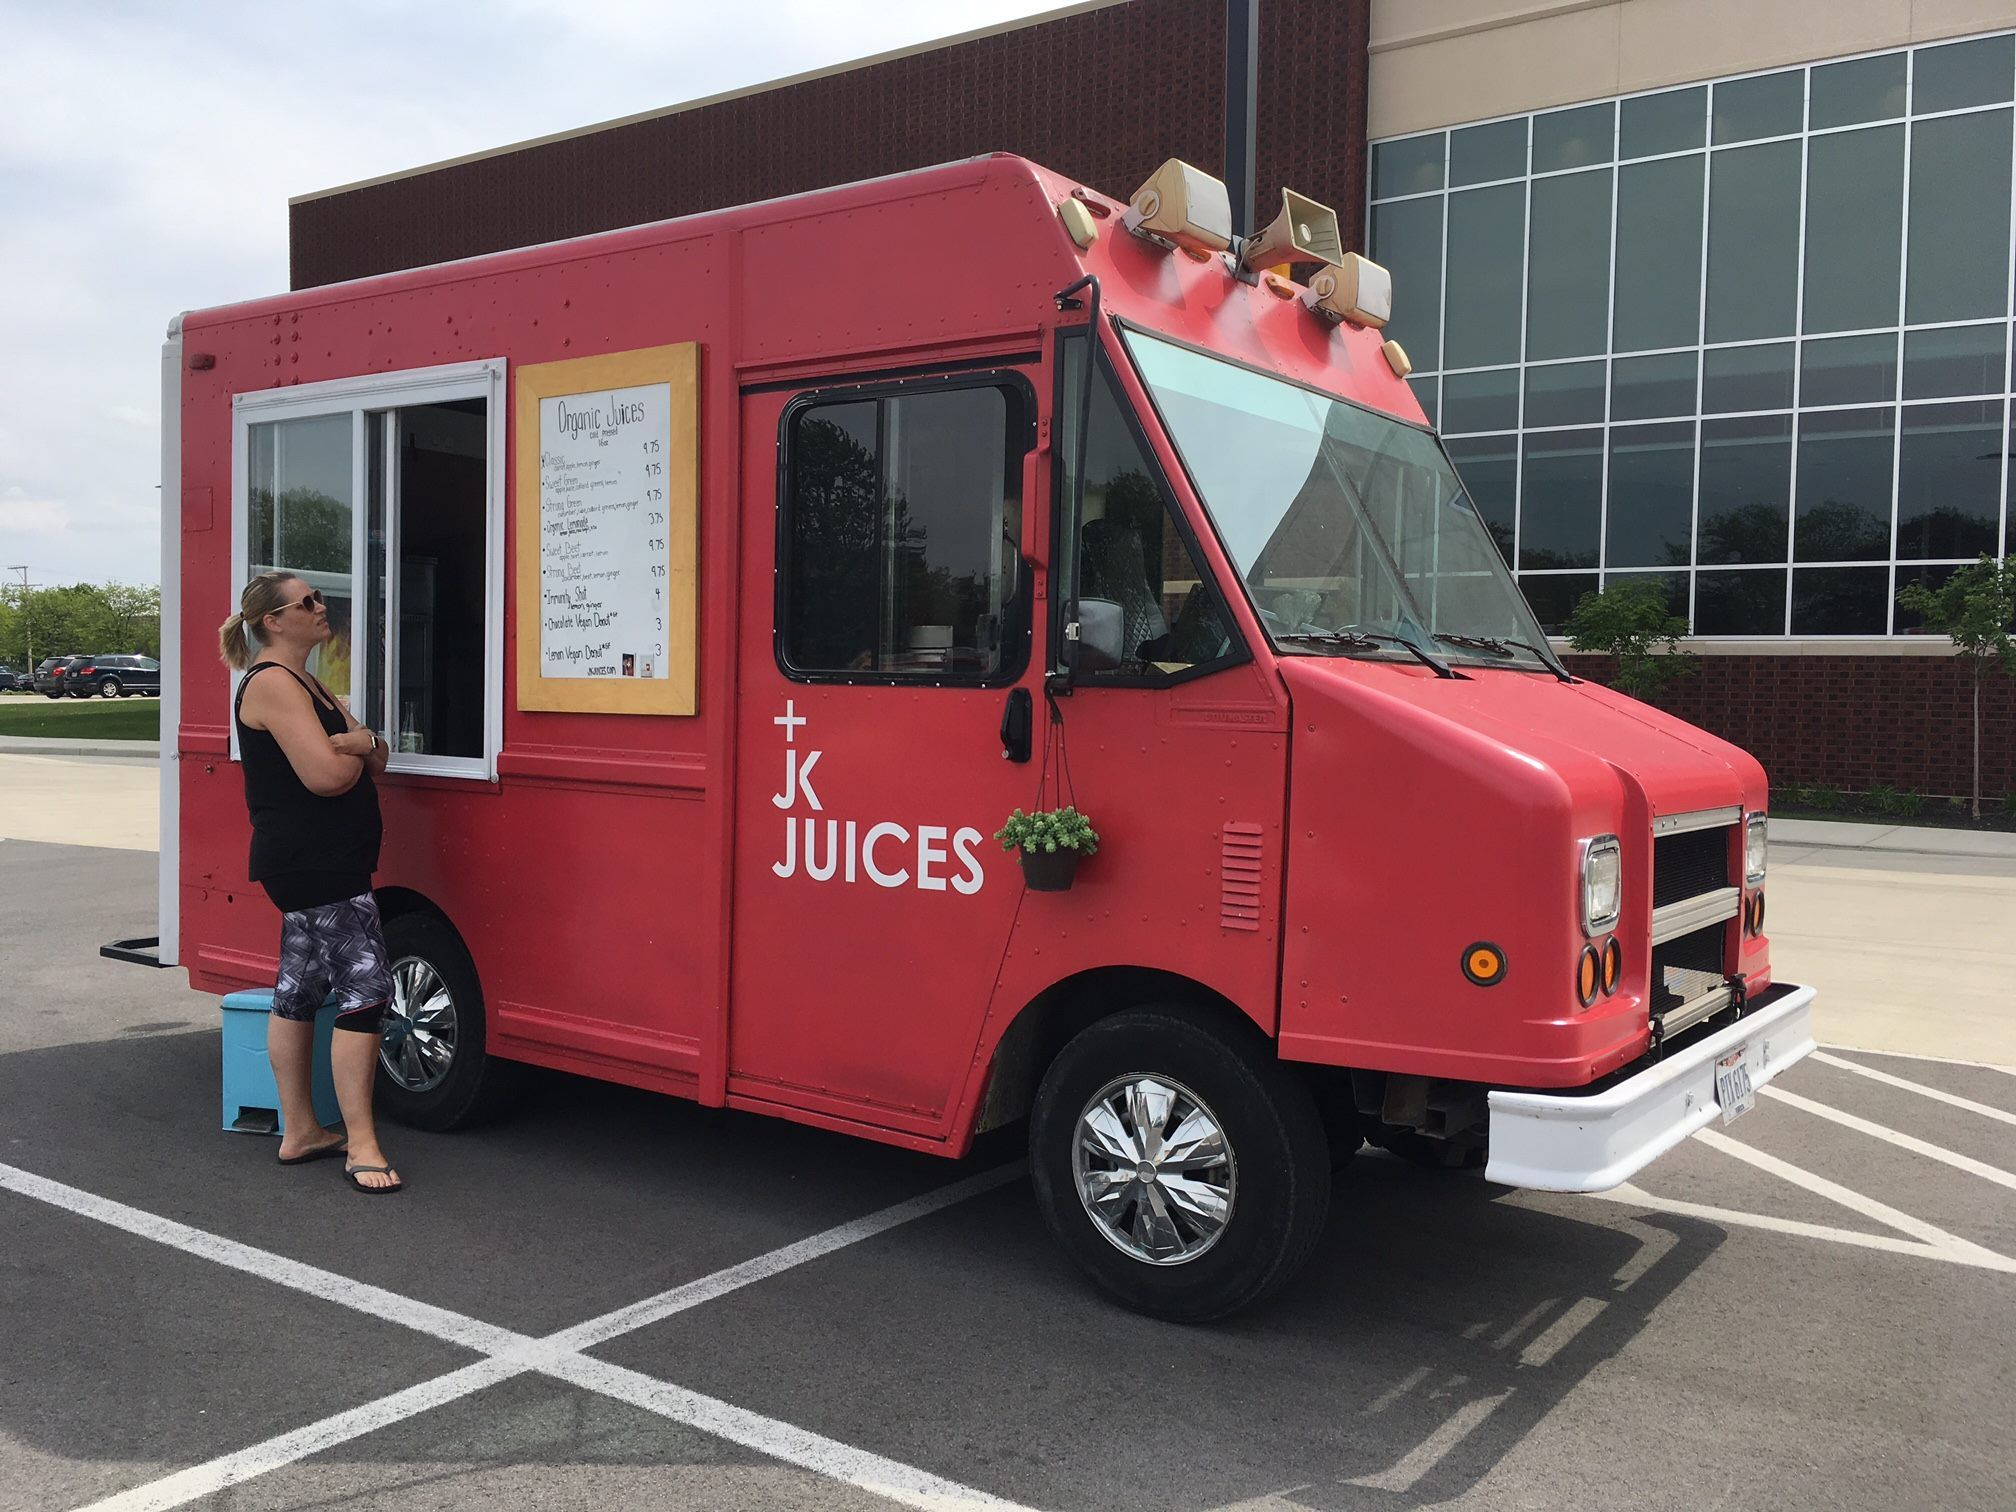 Jk Juices Jk Juices Is A Cold Pressed Juice Bar On Wheels Known For Their Use Of Local And Organic Product And Findlay Organic Juice Cold Pressed Juice Bar